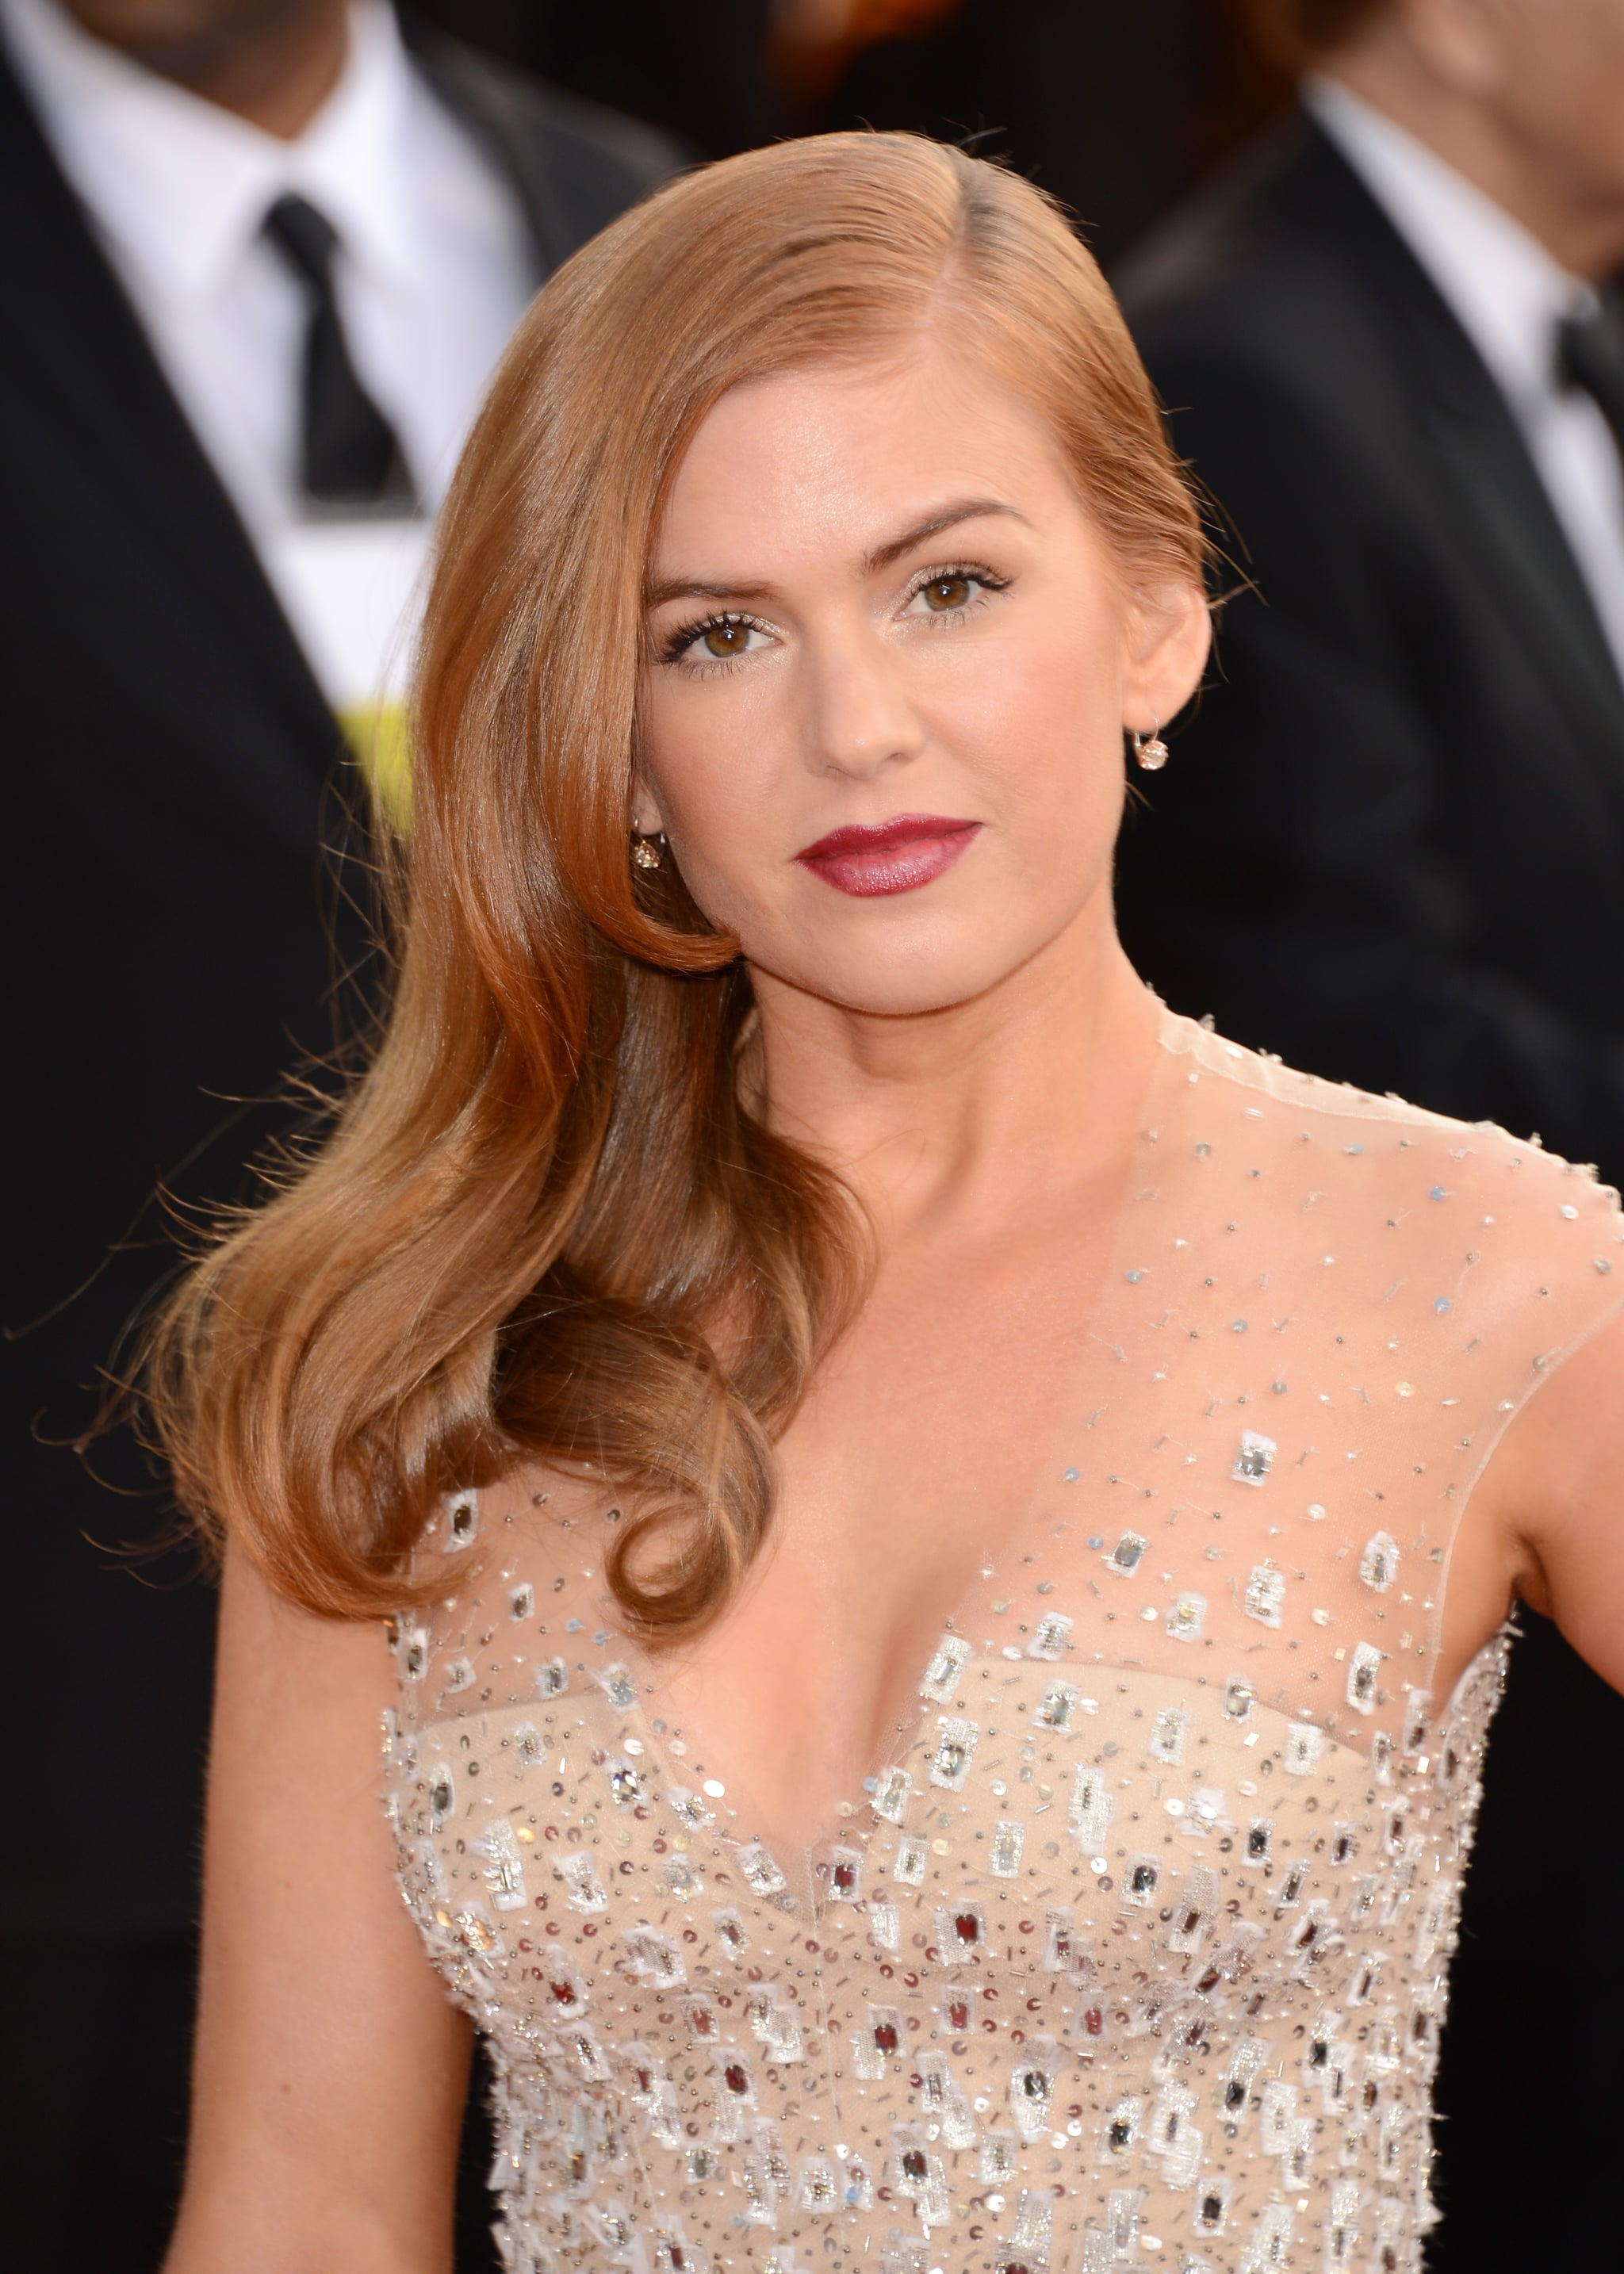 Isla Fisher looked flawless on the red carpet.